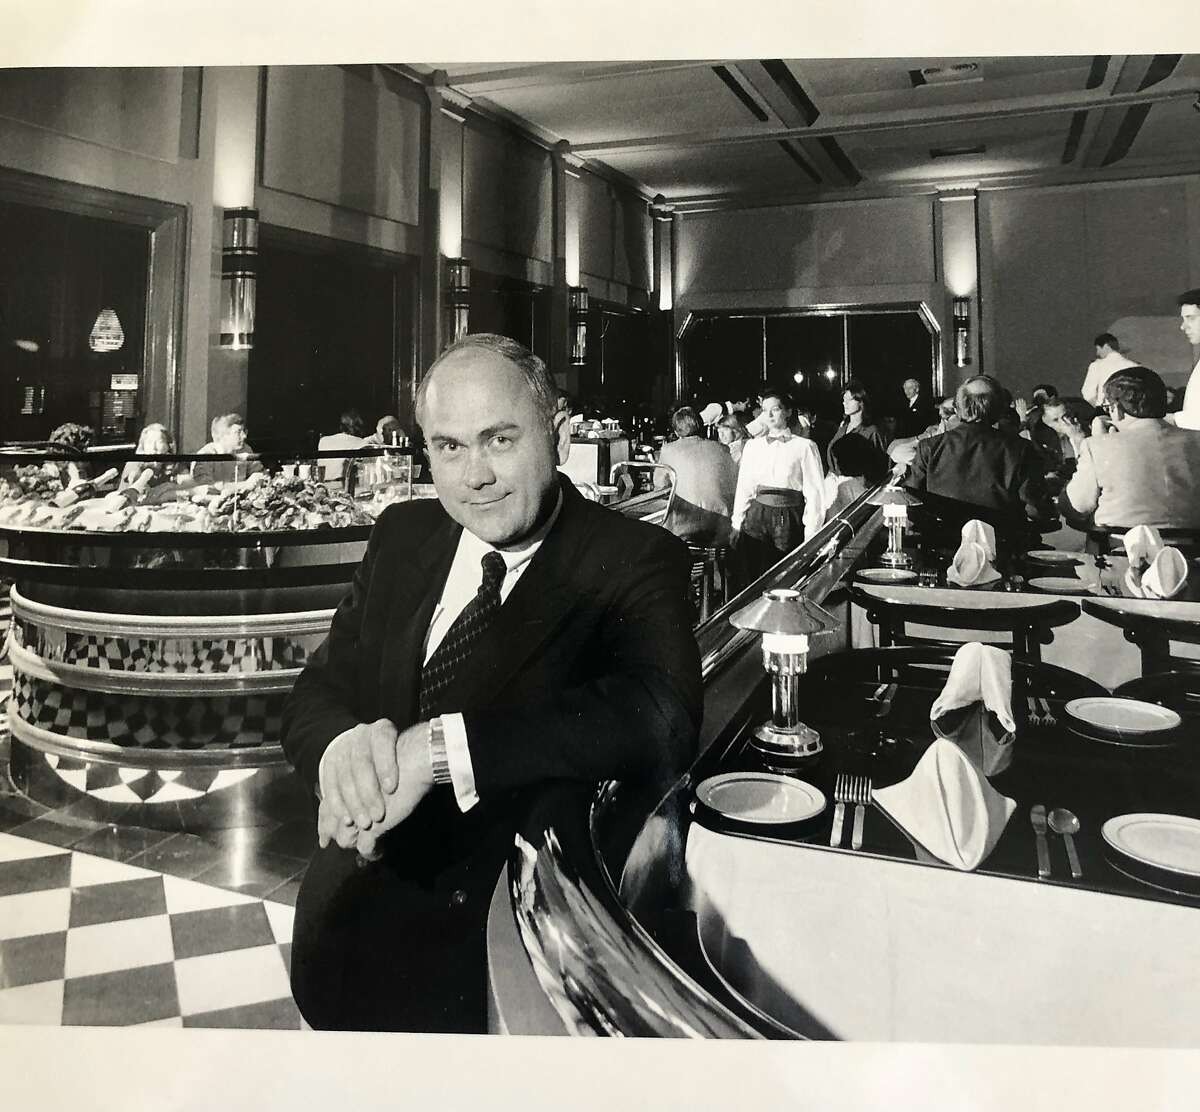 Sam DuVall poses for a portrait inside one of his swanky San Francisco restaurants, Cafe Royale, in 1983.